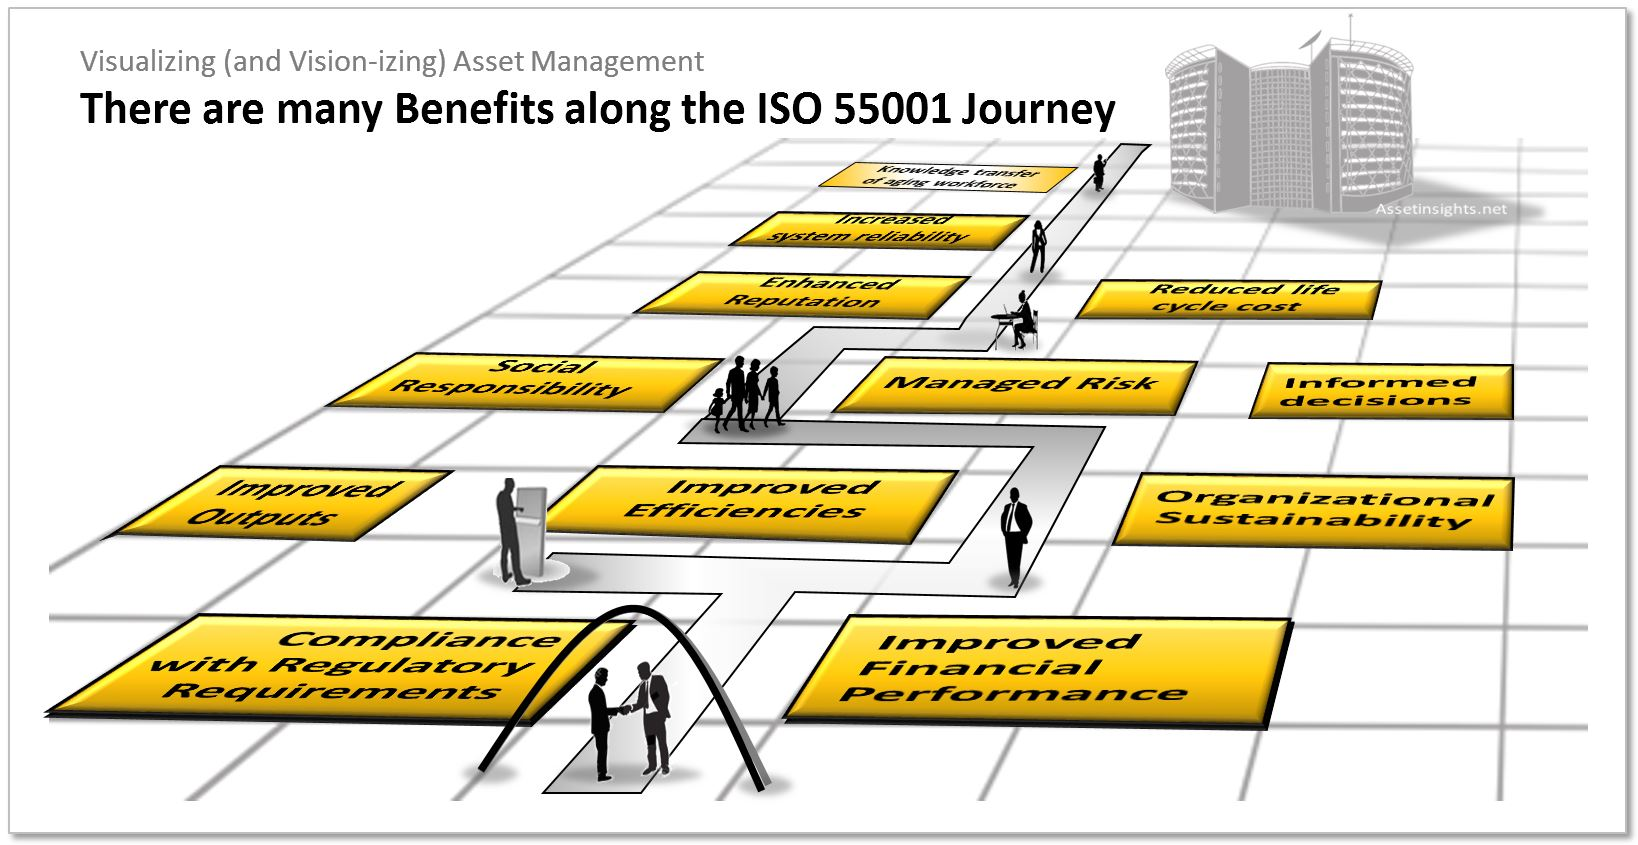 The many benefits of implementing an asset management system in accordance with the requirements of ISO 55001